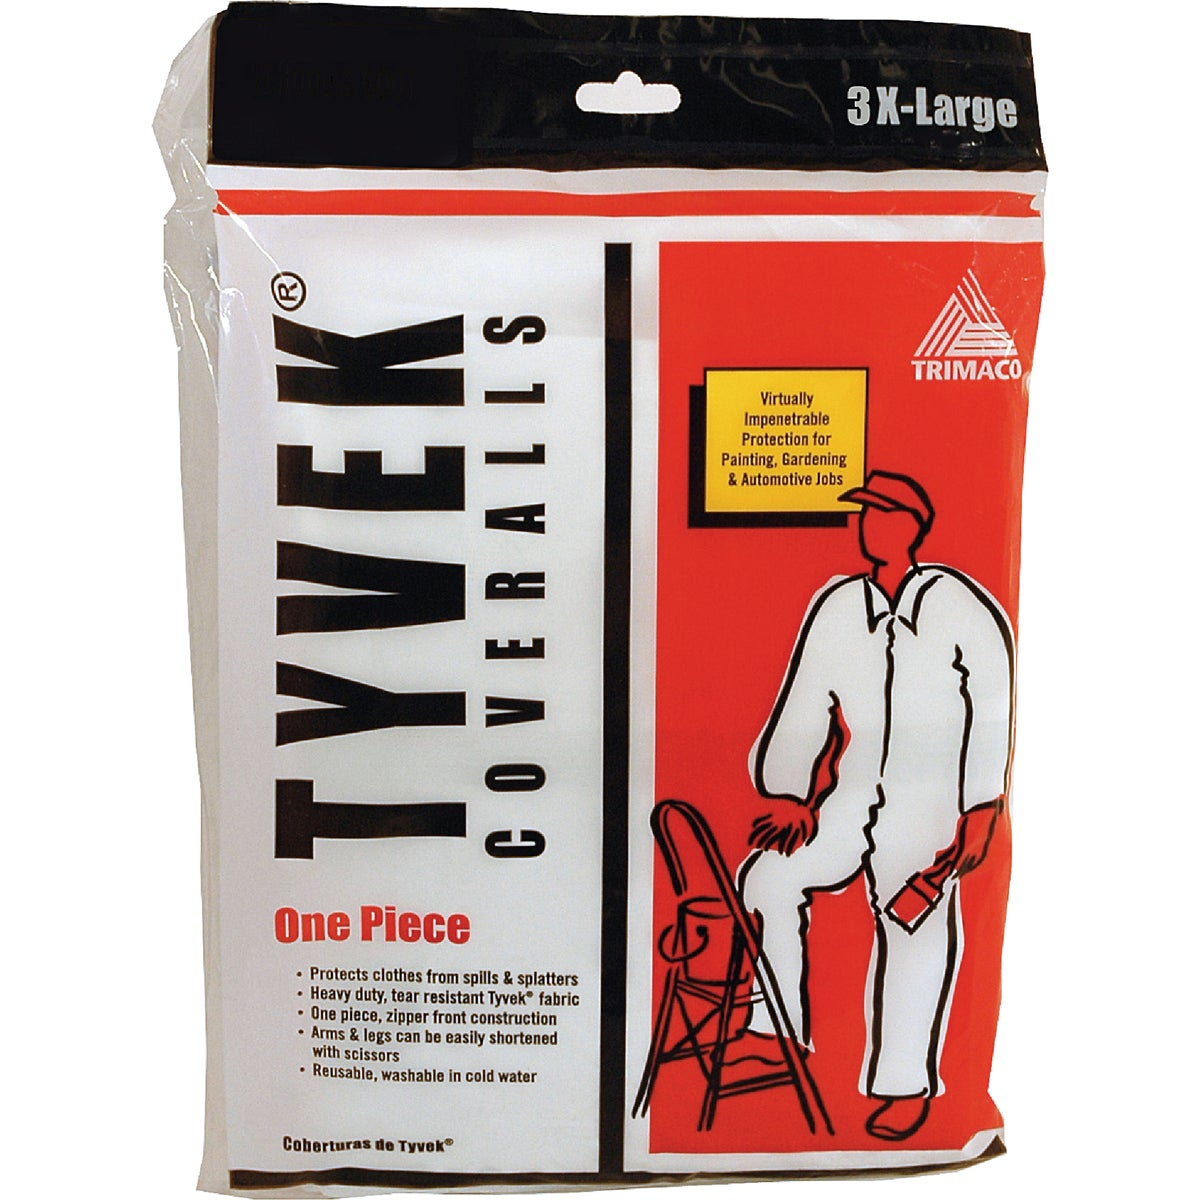 3XL TYVEK COVERALLS - 14125 by Trimaco L L C